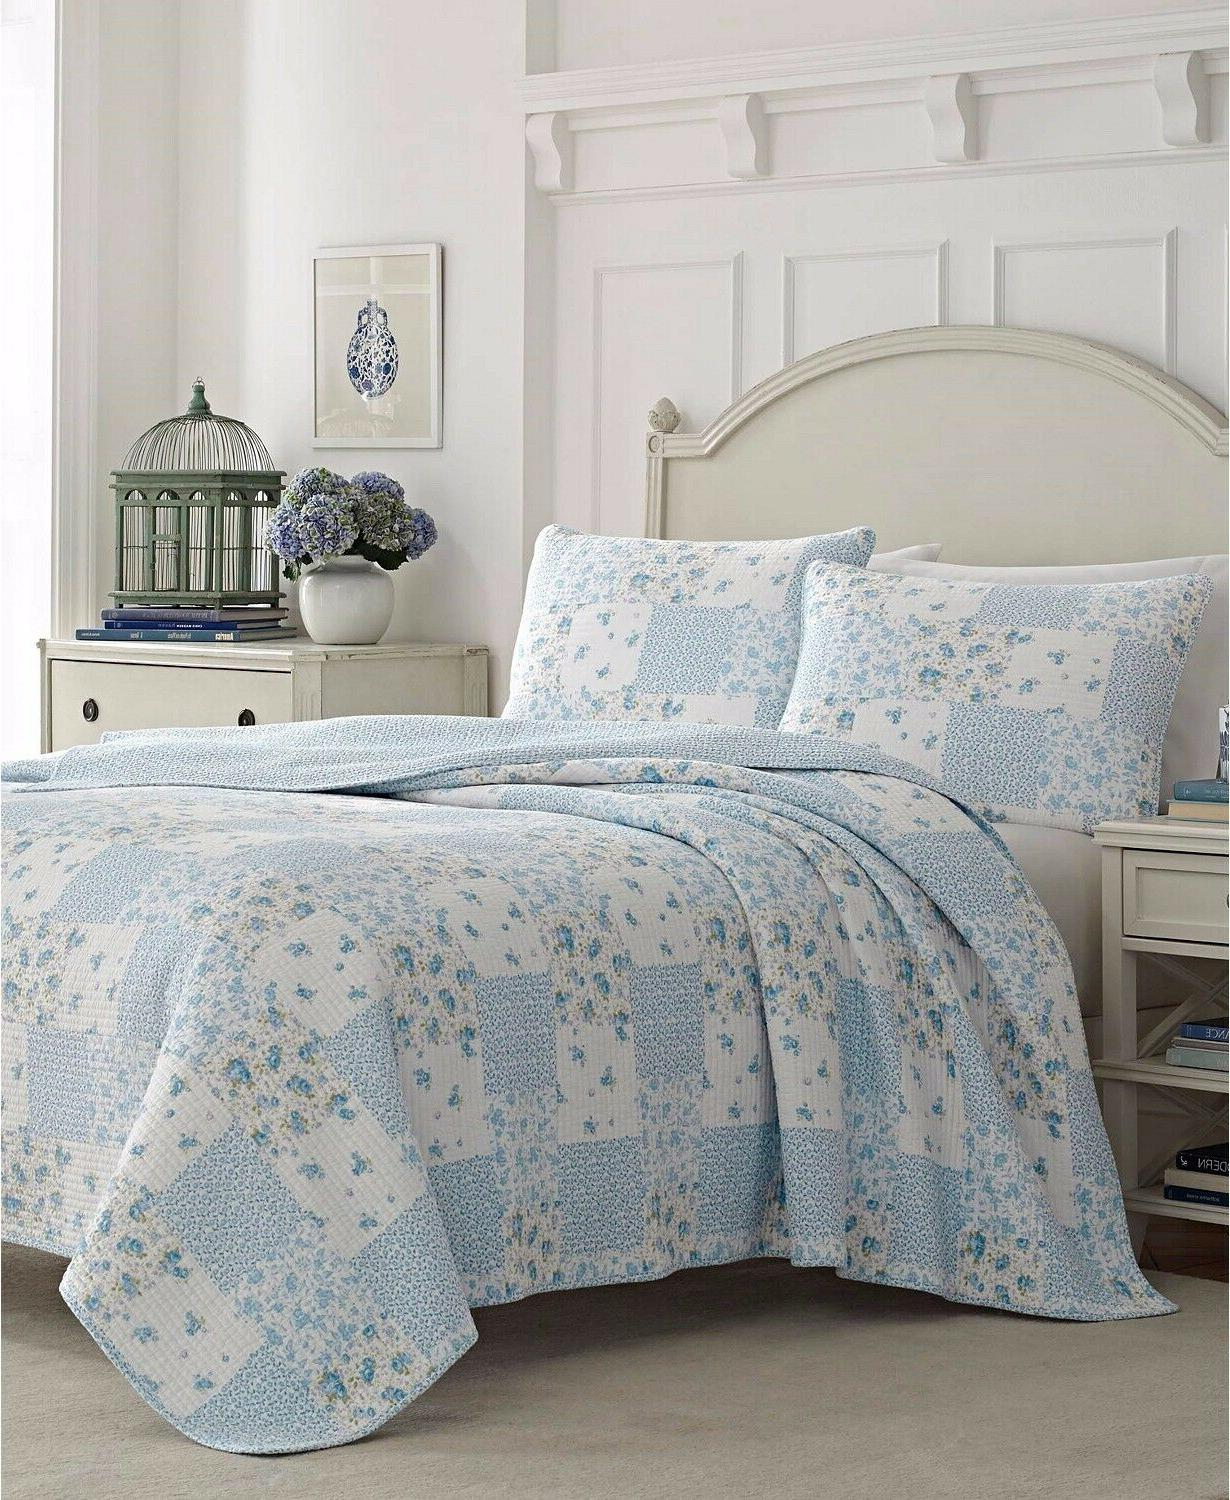 NEW in BAG Laura Ashley 3 Piece Kenna Blue Reversible Quilt